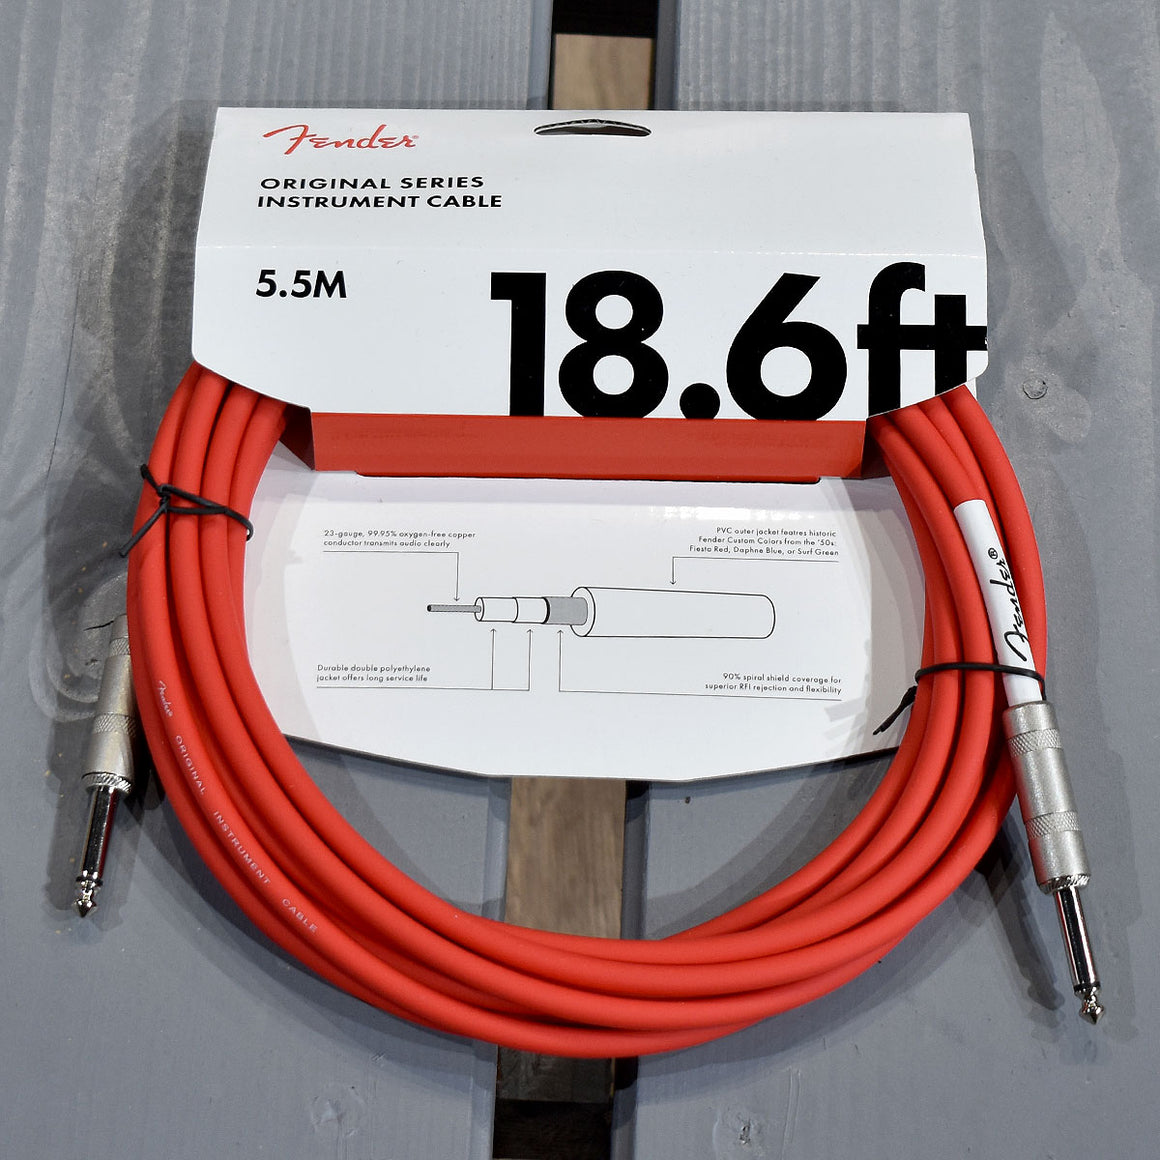 Fender Original Series Instrument Cable 18.6ft, Fiesta Red (Straight)